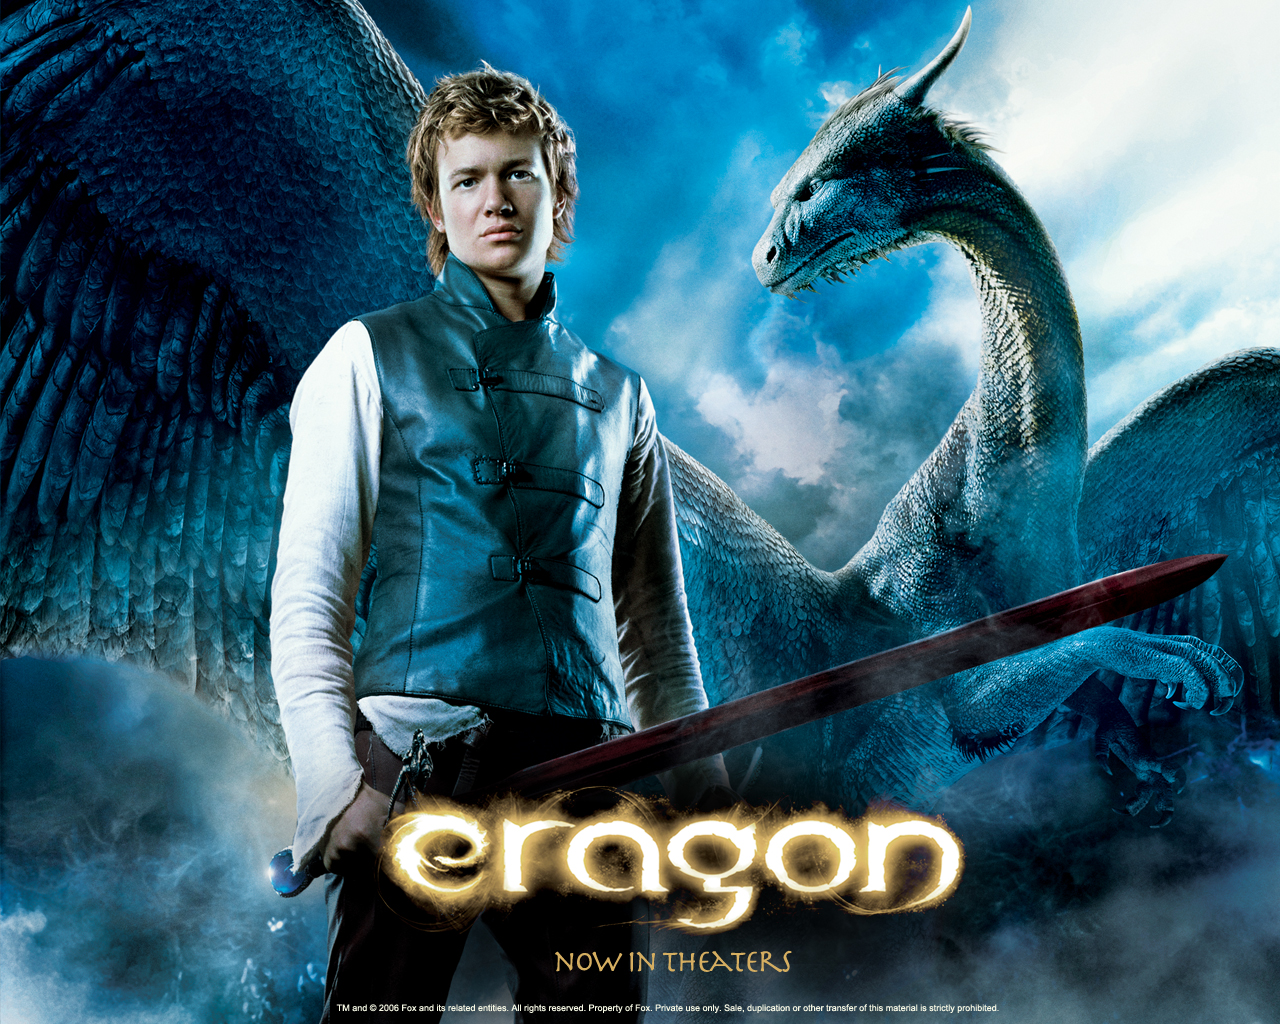 http://cabulosocast.files.wordpress.com/2010/10/eragon-eragon-175445_1280_1024.jpg